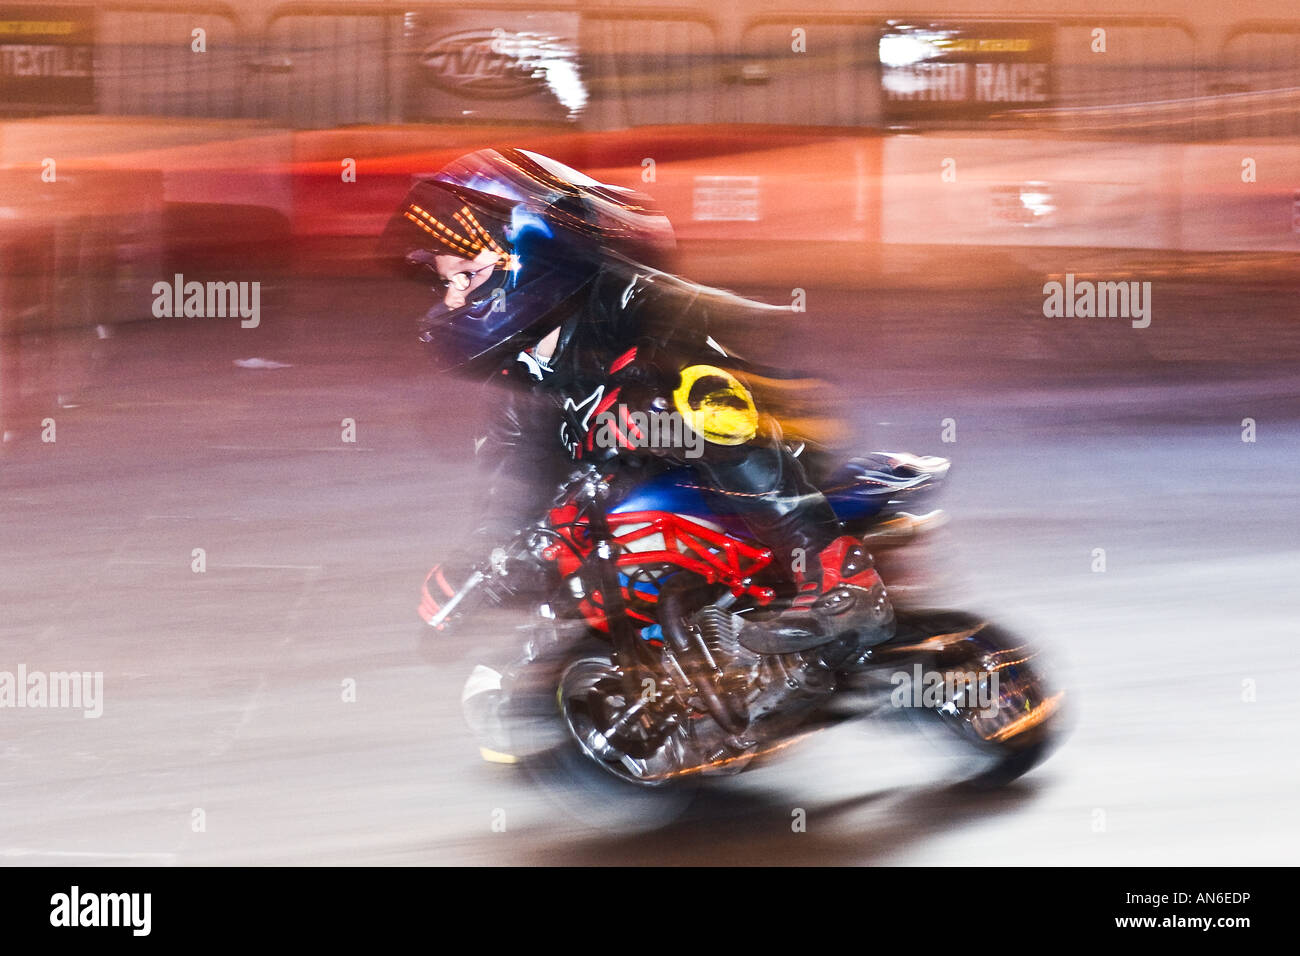 Young Boy On A Mini Moto Bike   Stock Image